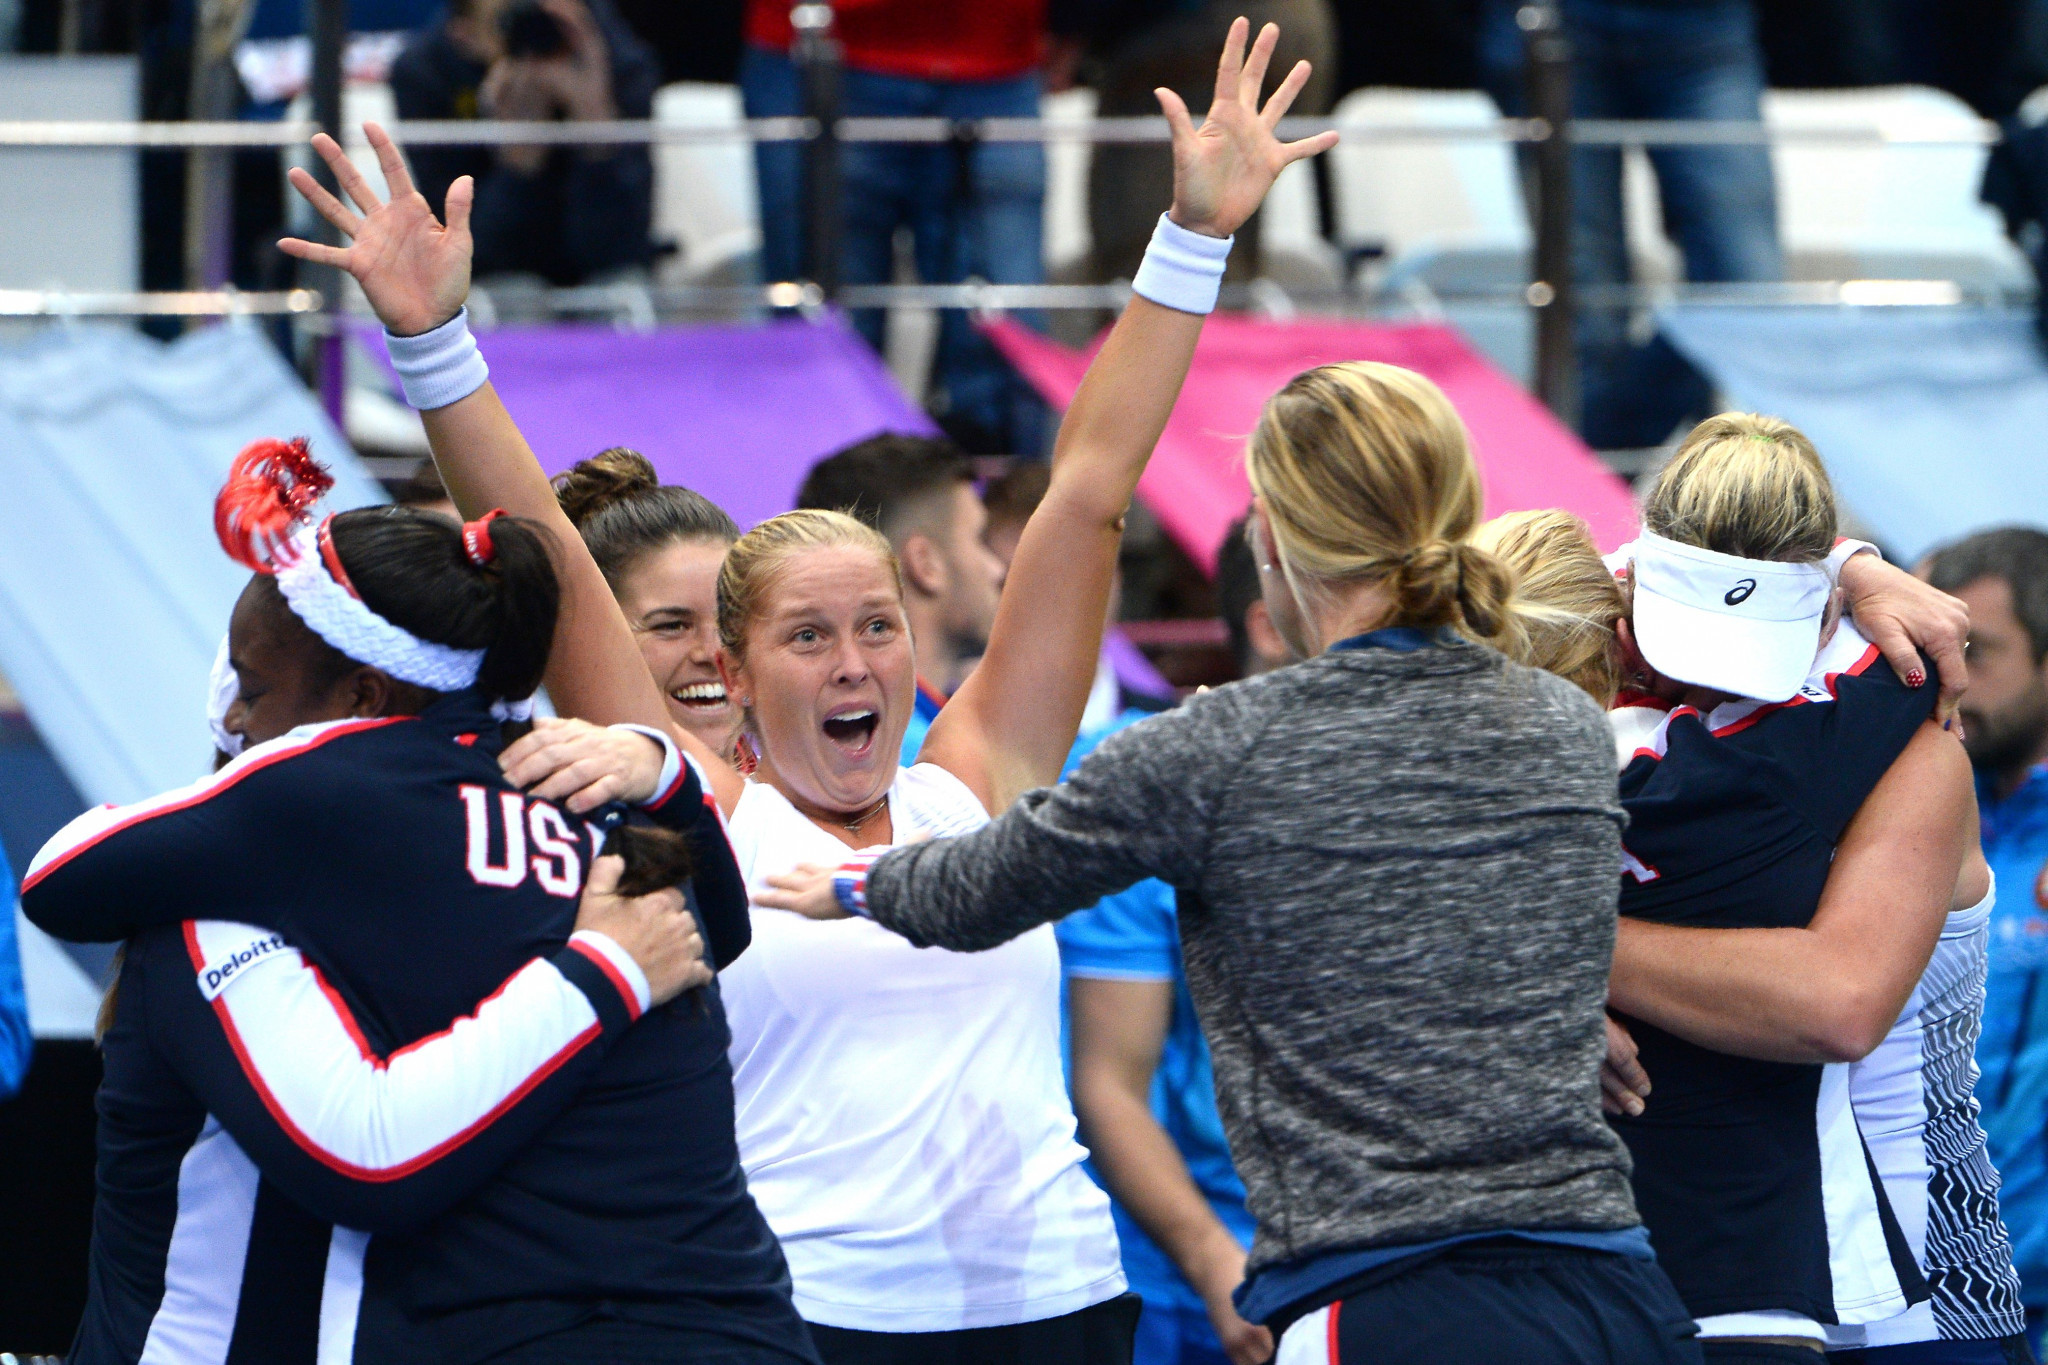 United States hold nerve in doubles finale to claim first Fed Cup win for 17 years